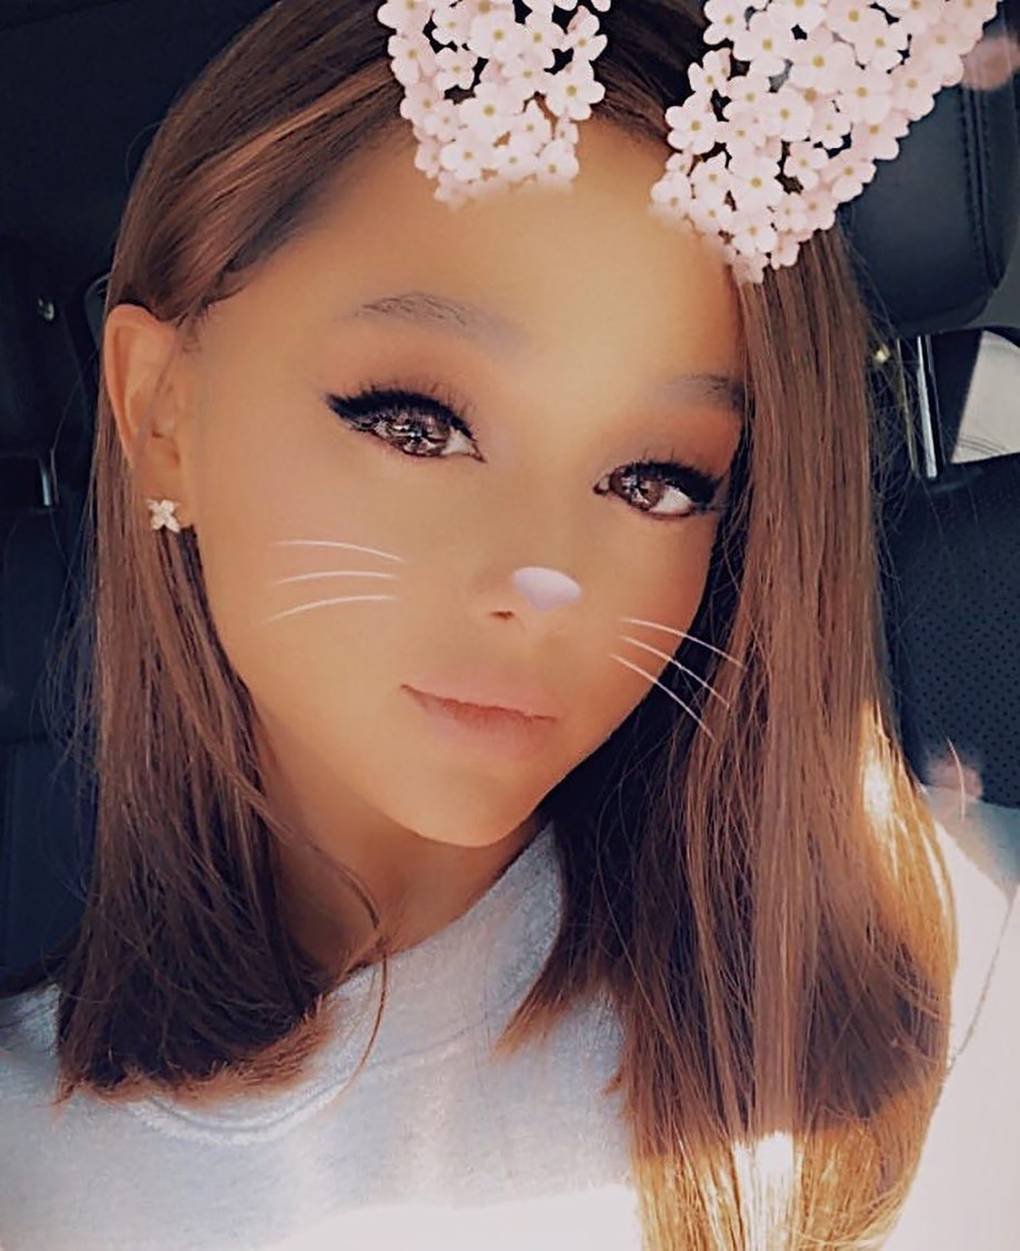 Ariana Grandes Post Break Up Hair Cut Is A Haute Chop Fit For The